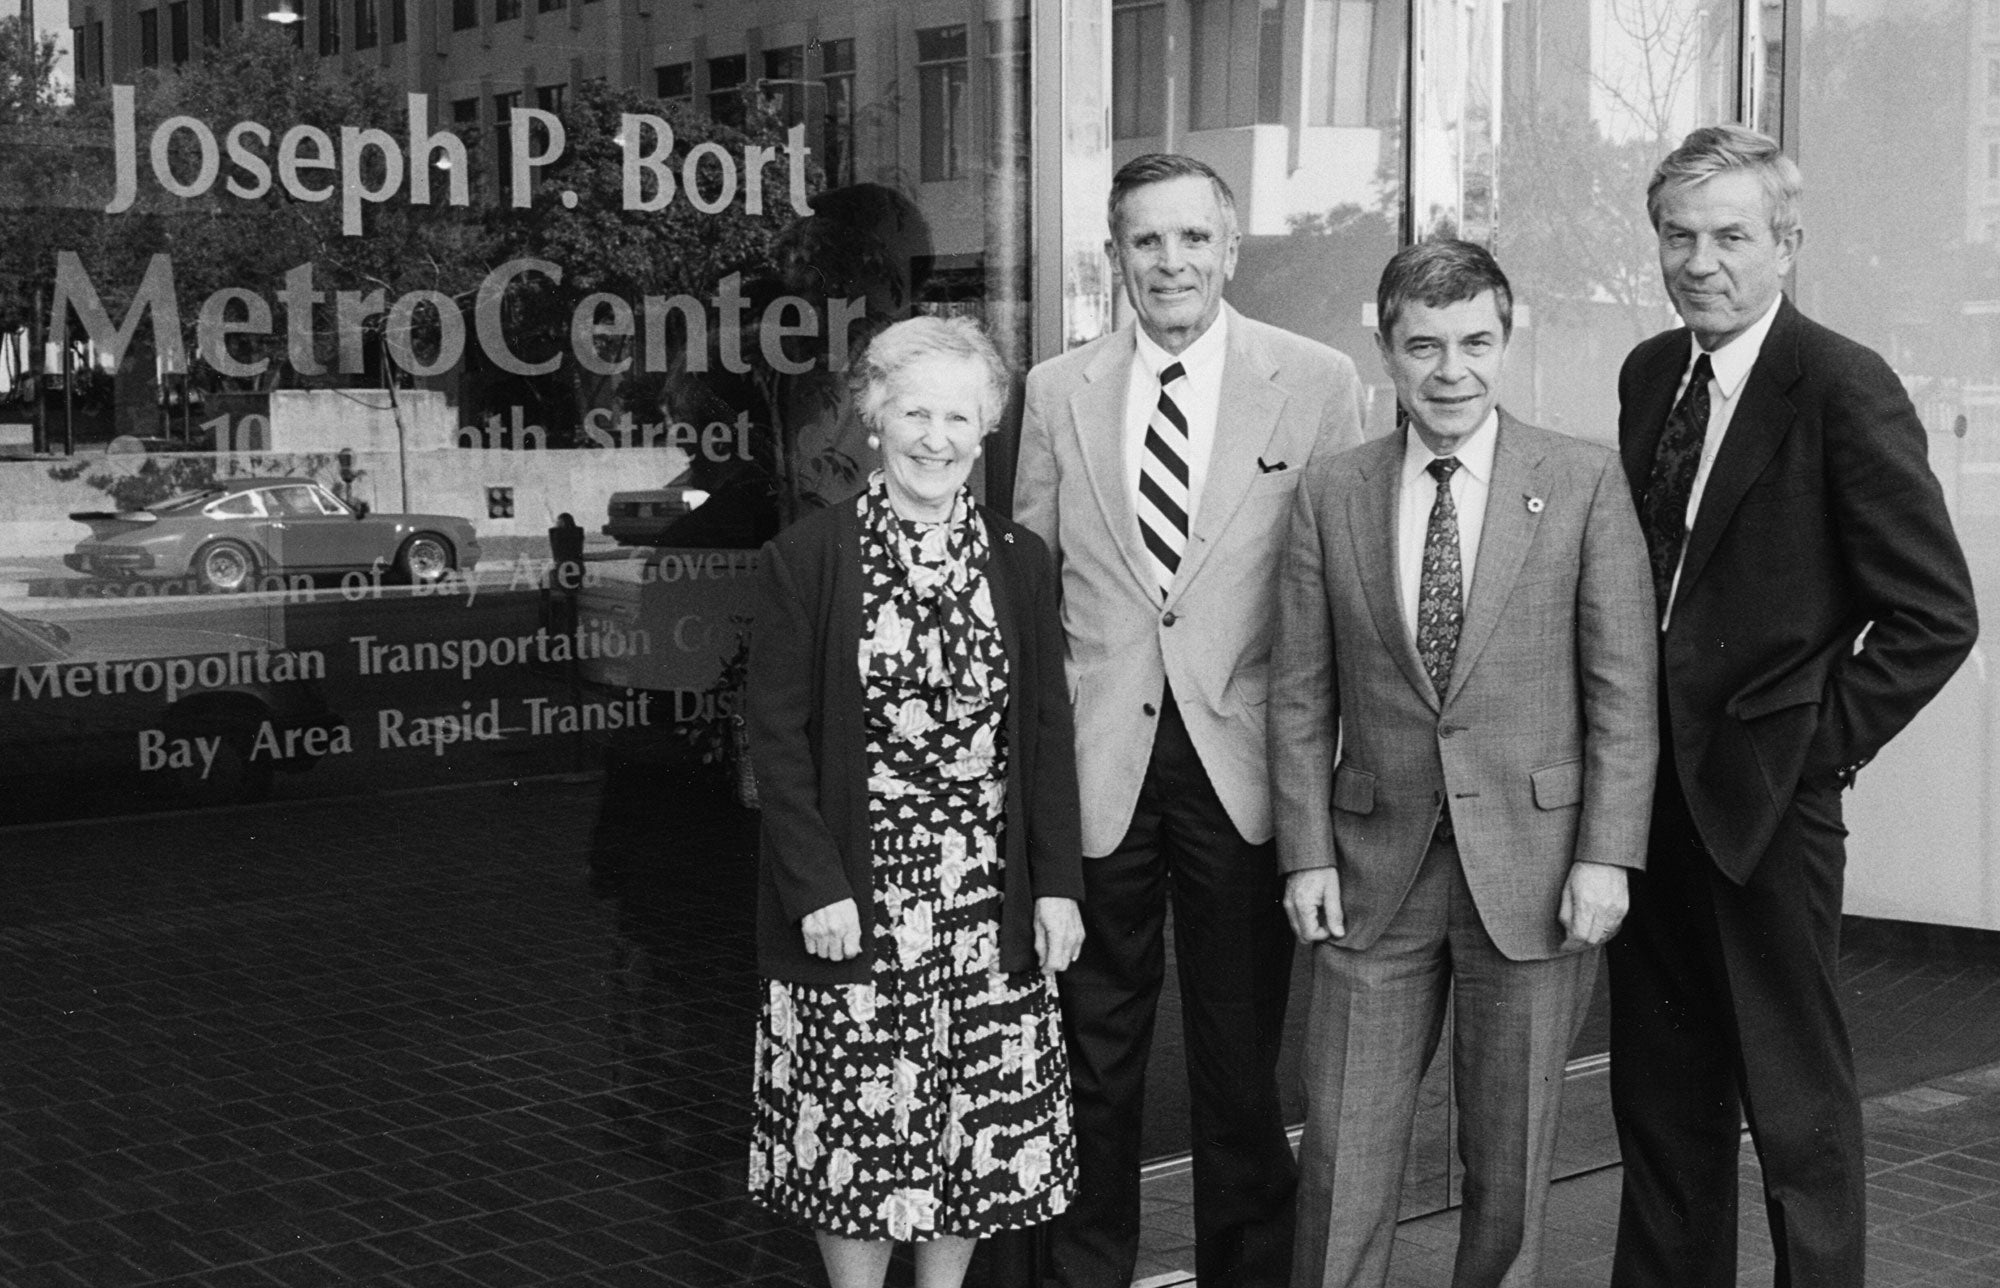 Showing off the newly etched glass gracing the front of the Joseph P. Bort MetroCenter are (left to right) Jackie Bort, Joseph P. Bort, ABAG Executive Director Revan Tranter and MTC Executive Director Lawrence D. Dahms.